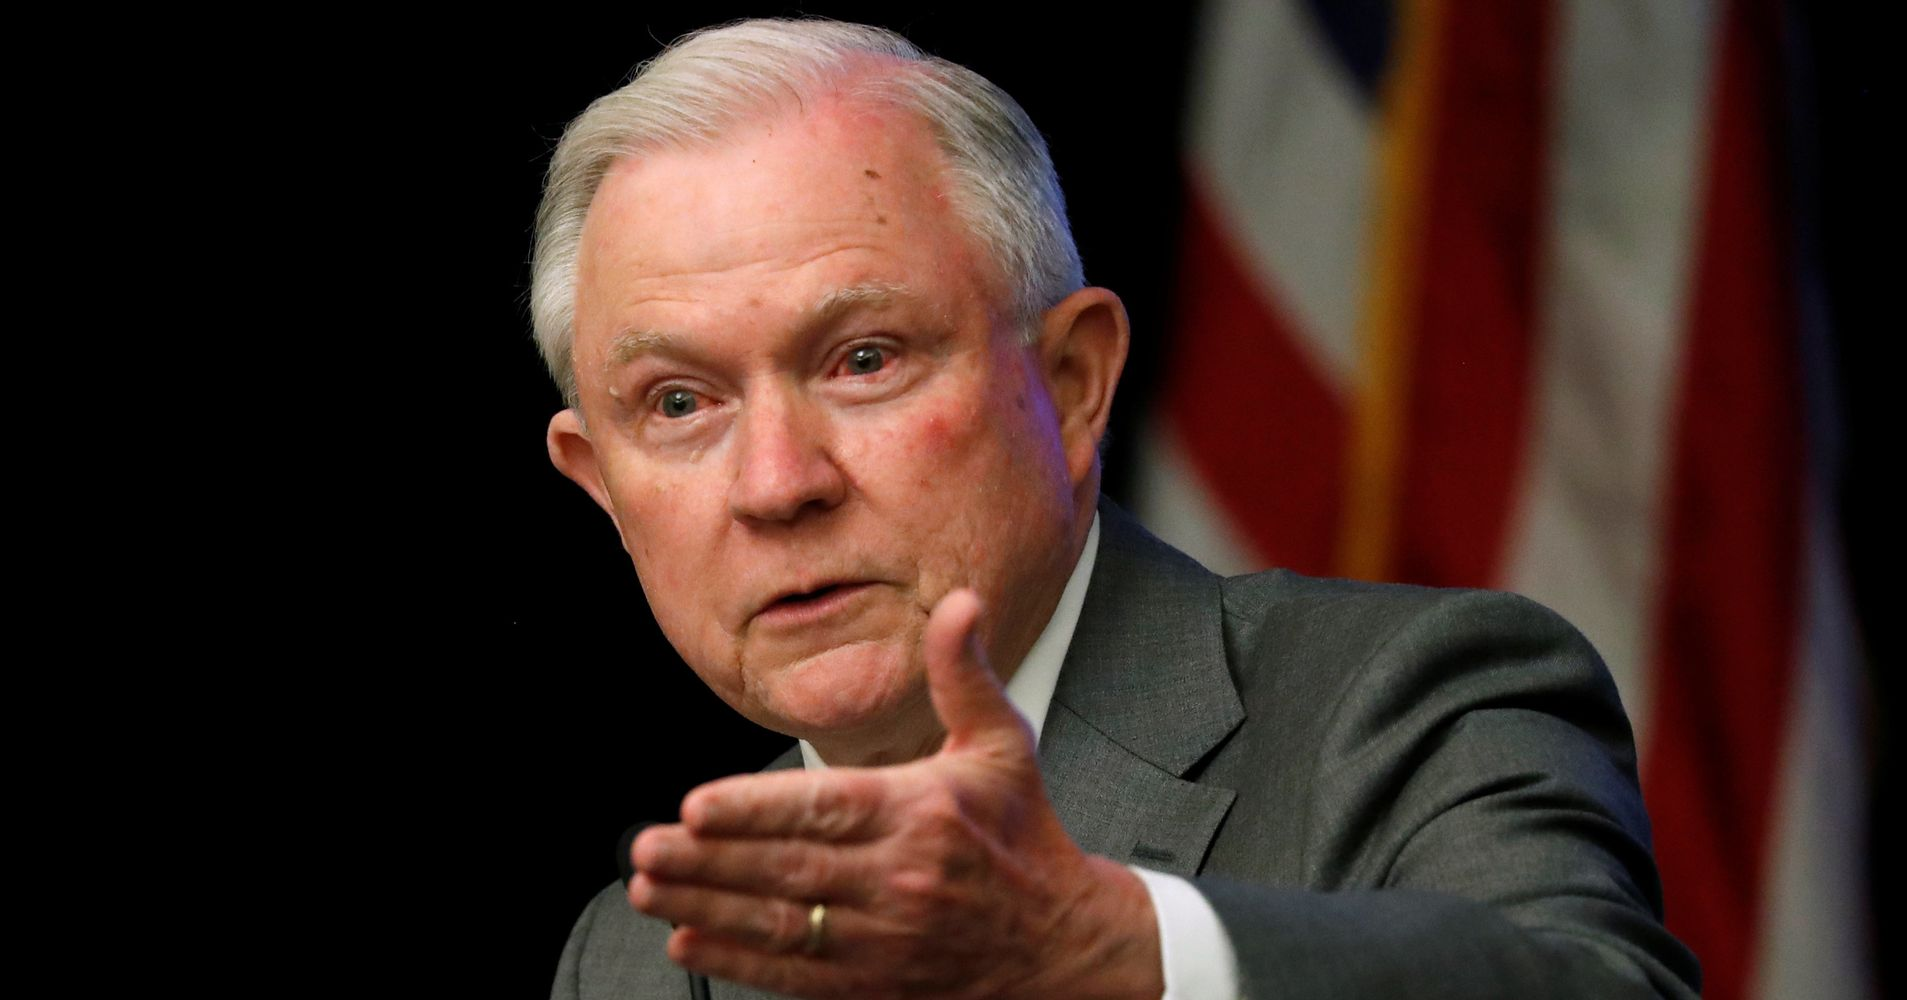 Jeff Sessions Says It's 'Painful' Hearing Christians Condemn His Family Separation Policy